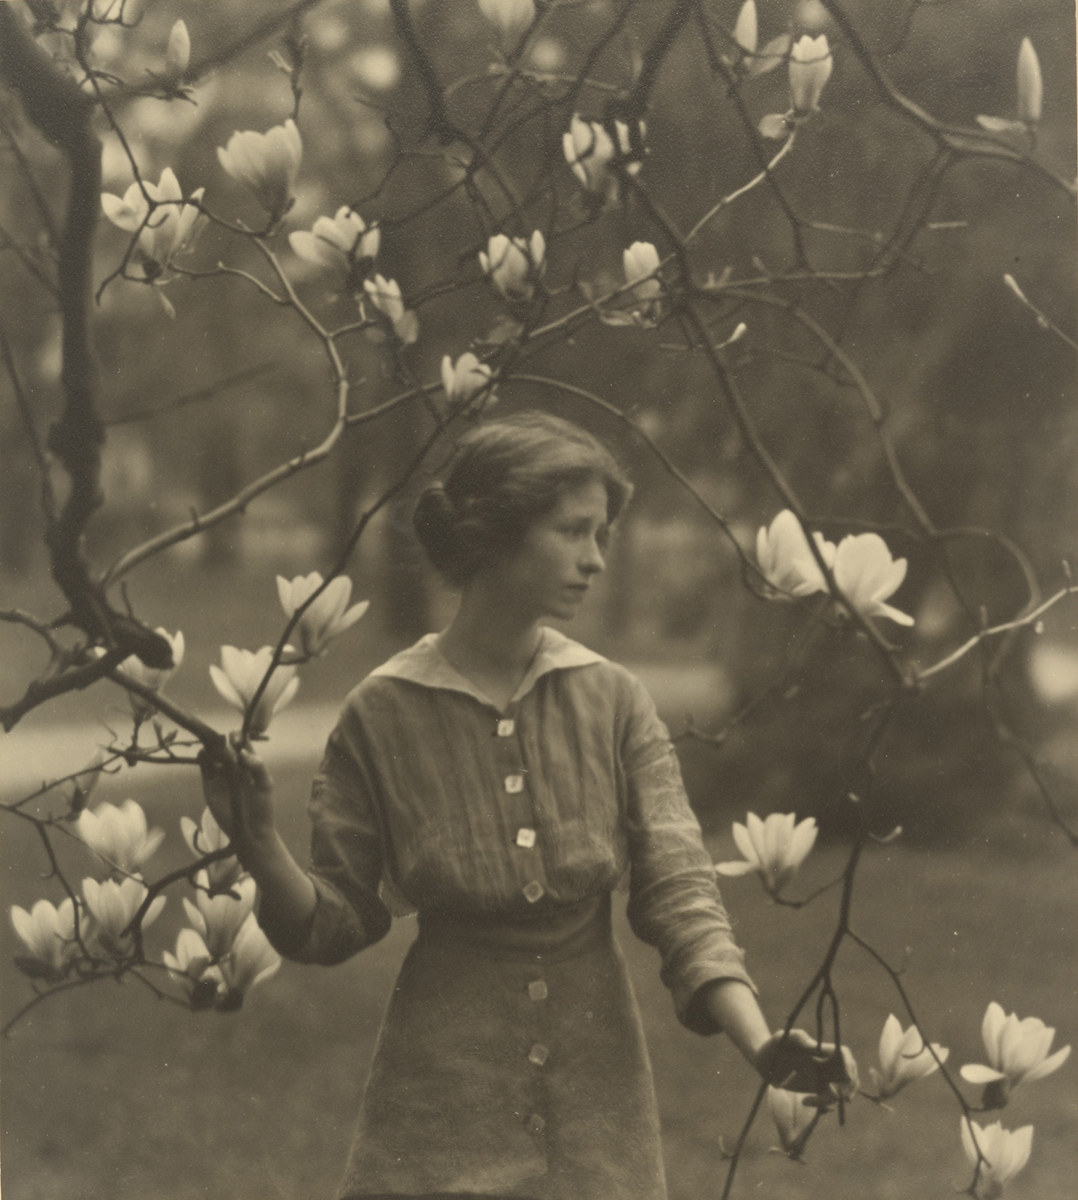 Arlnold Genthe - Edna St. Vincent Millay, c. 1017 © The J. Paul Getty Museum, Los Angeles